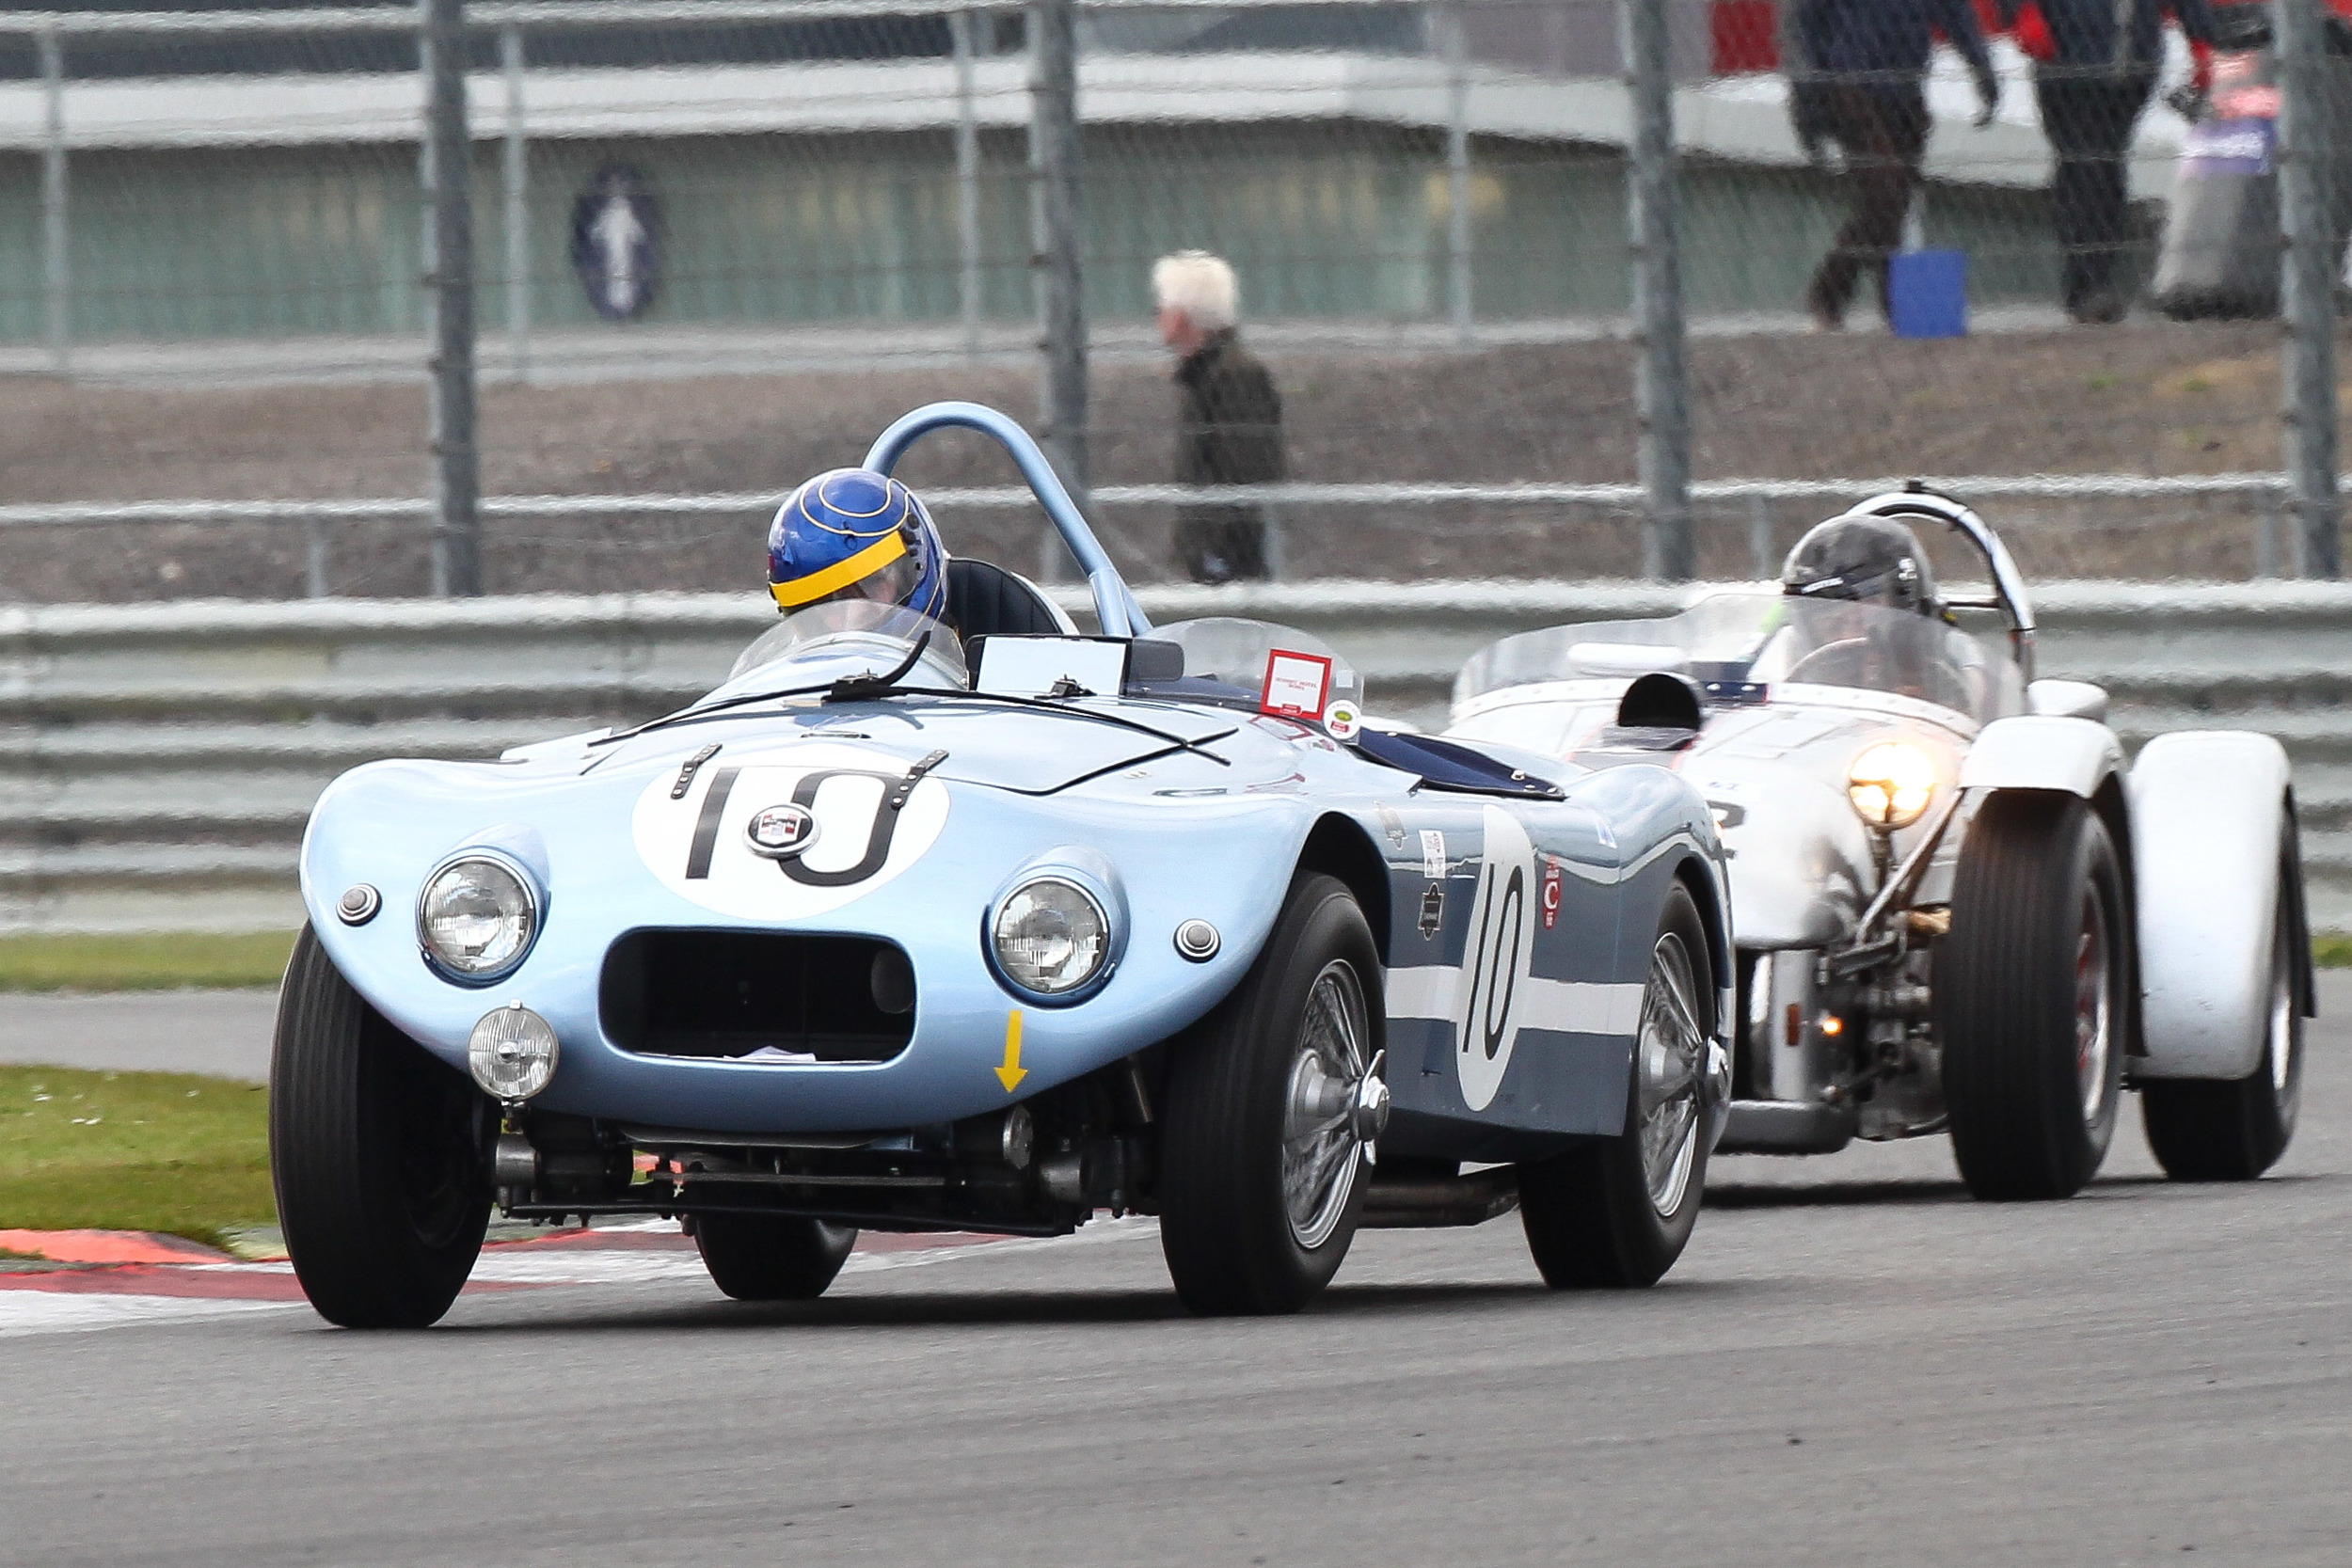 Sam Stretton in the Nash Healey about to be passed by Chris Guest in the Kurtis as the latter stormed through the field.      Photo - Richard Styles